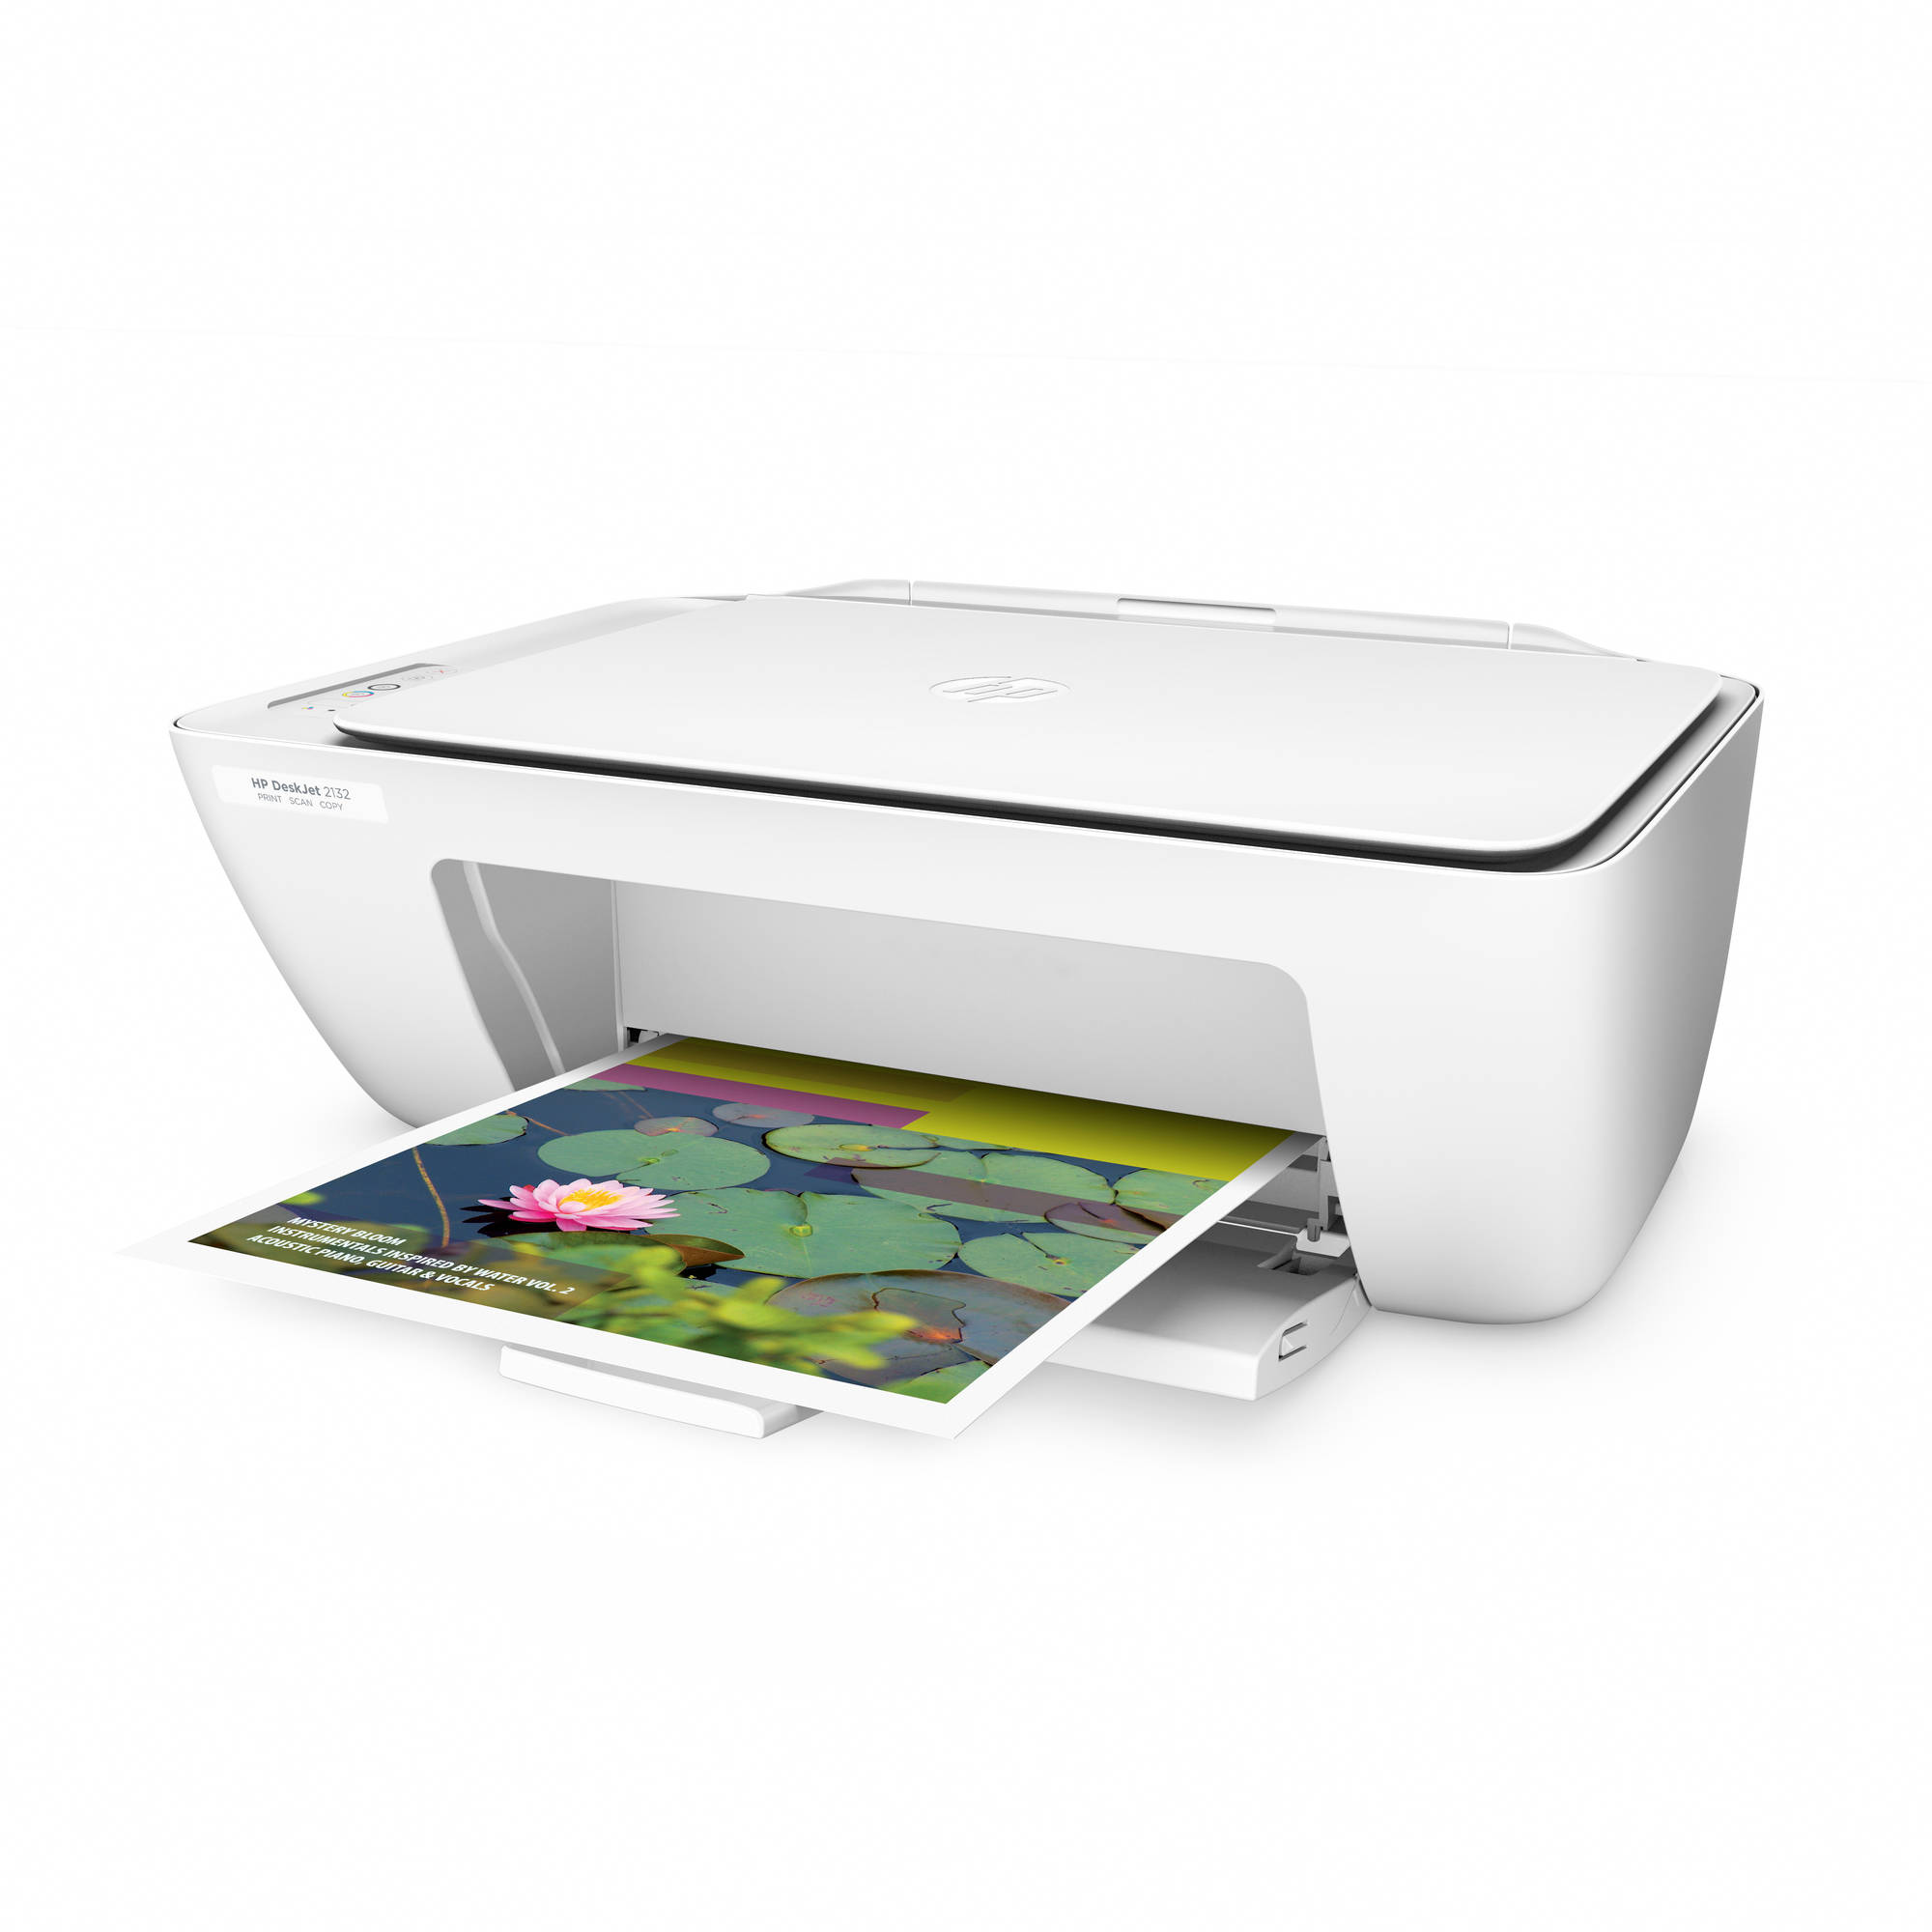 HP Deskjet 2132 All-in-One Printer/Copier/Scanner - Walmart.com